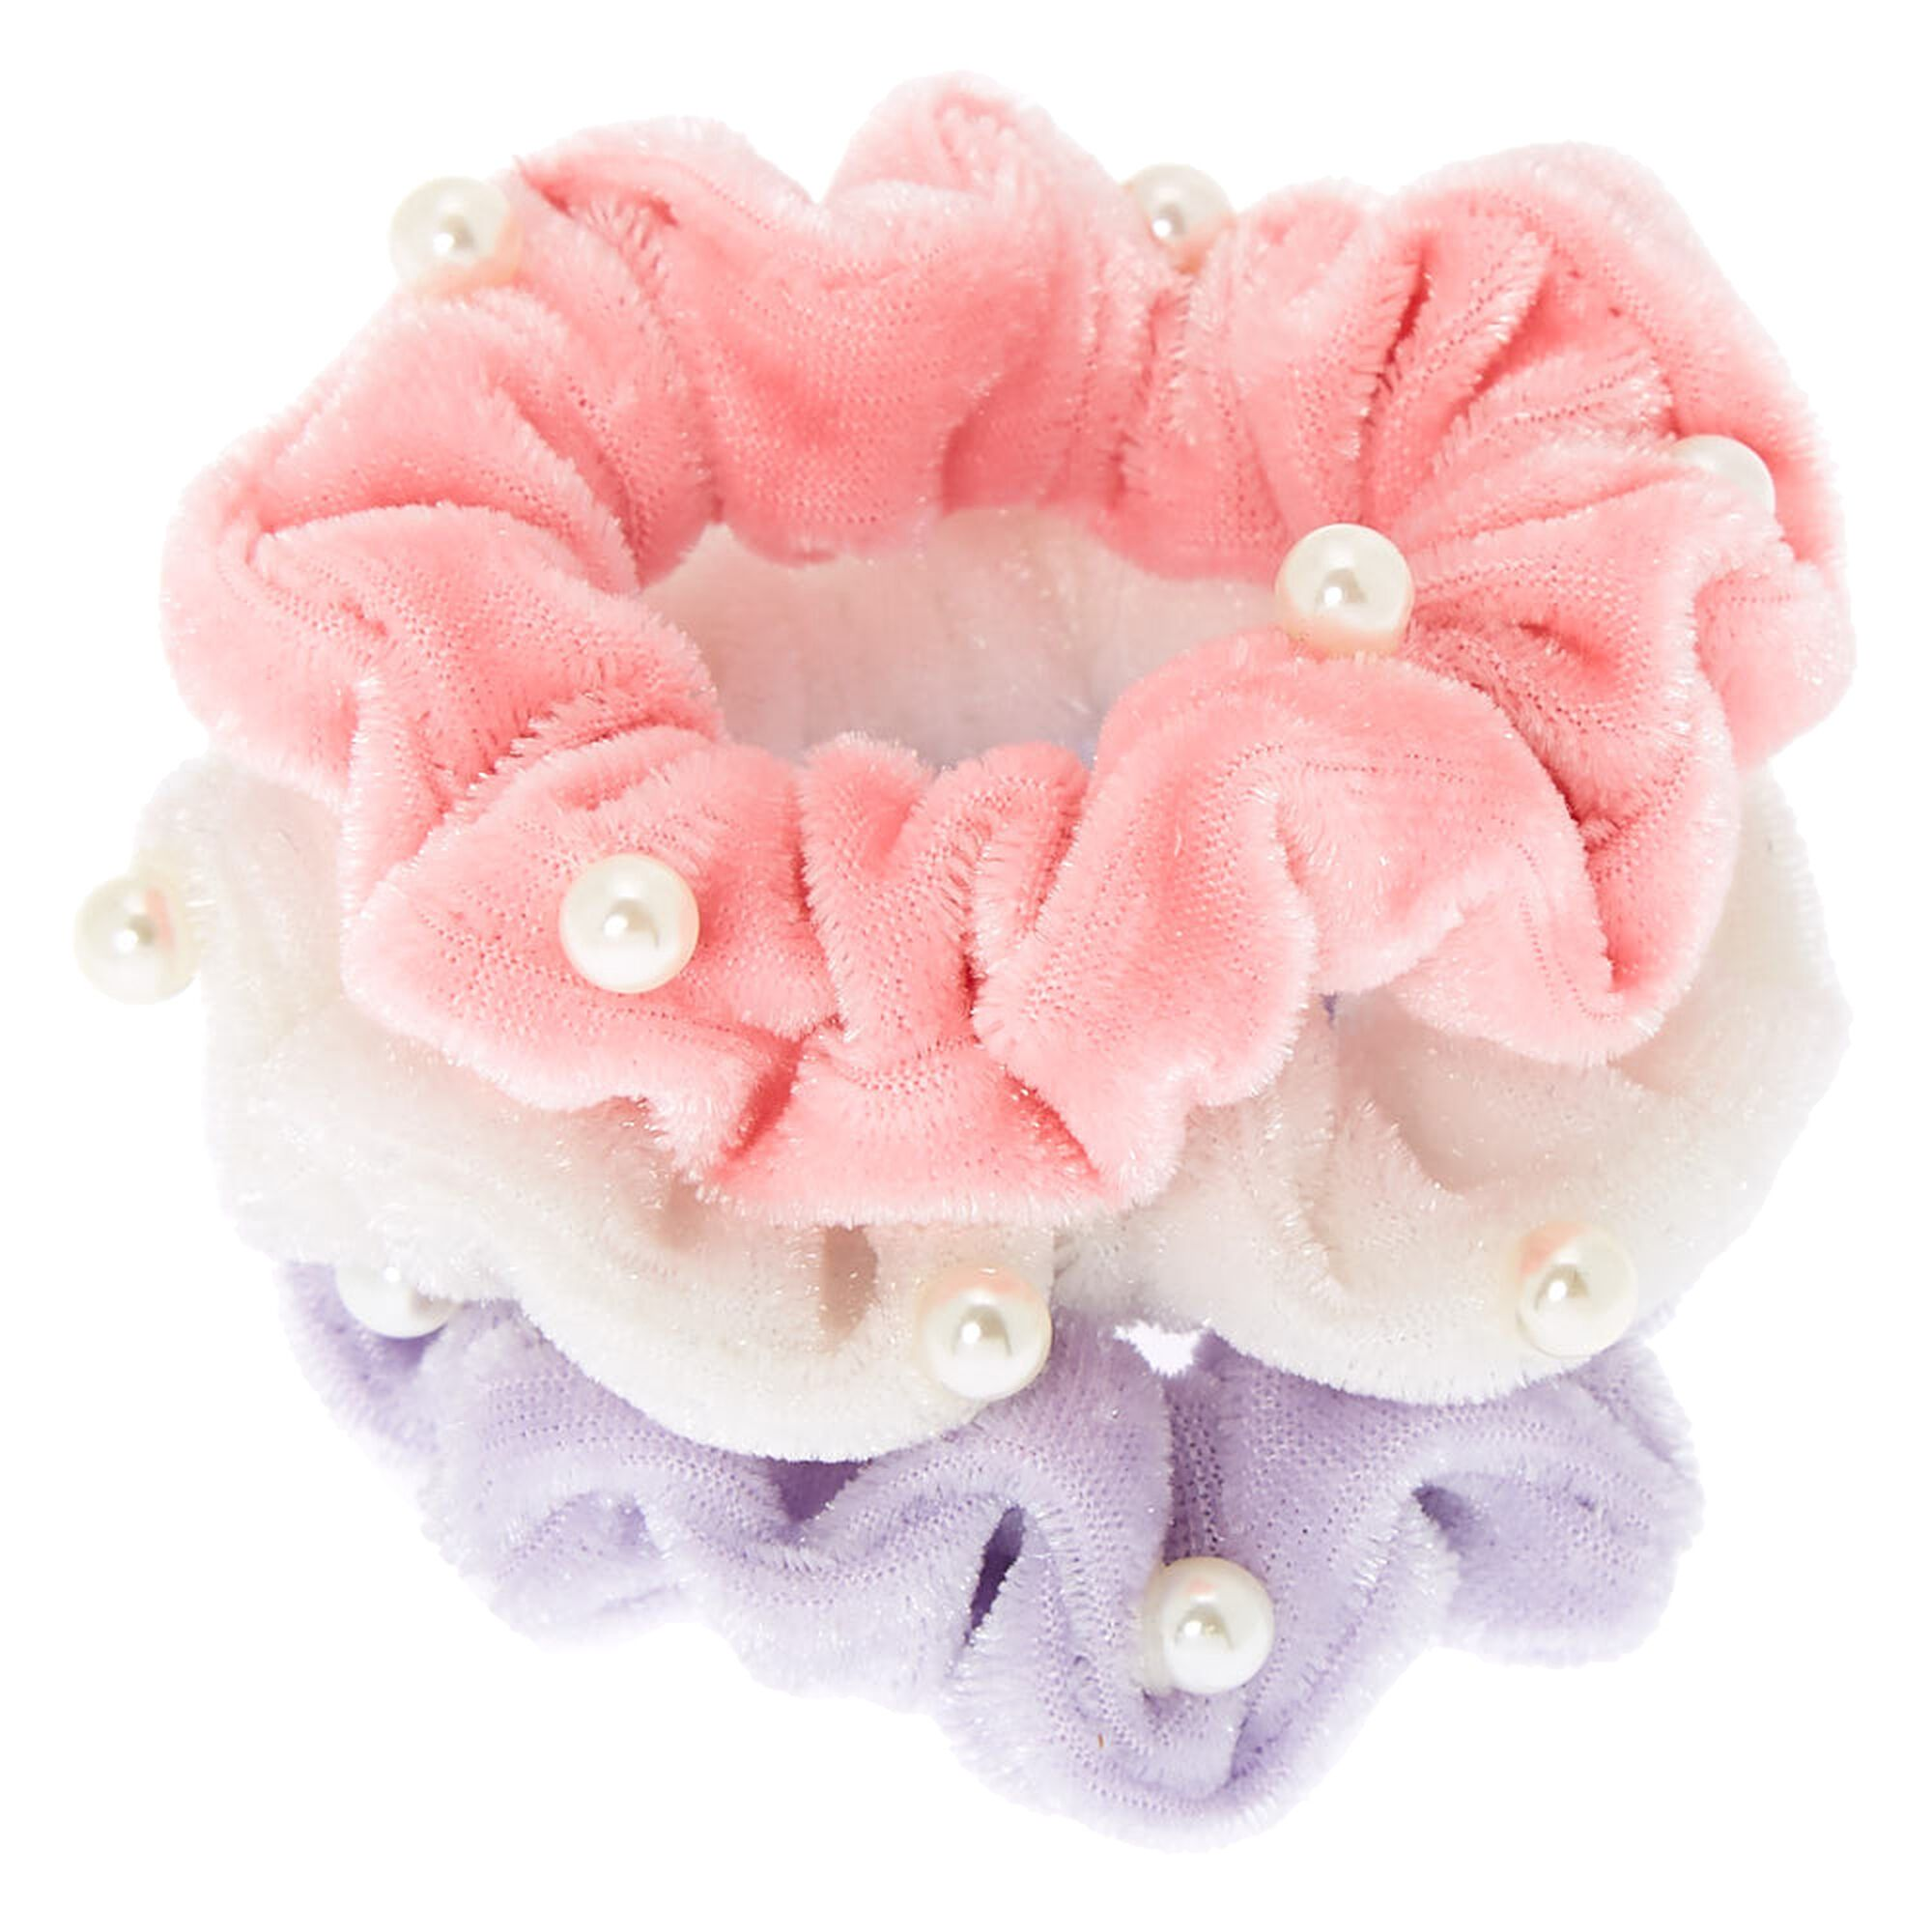 3 Braided Scrunchies Light Green,Pink /& Blue Trendy Ponytail Girl Hair Accessory